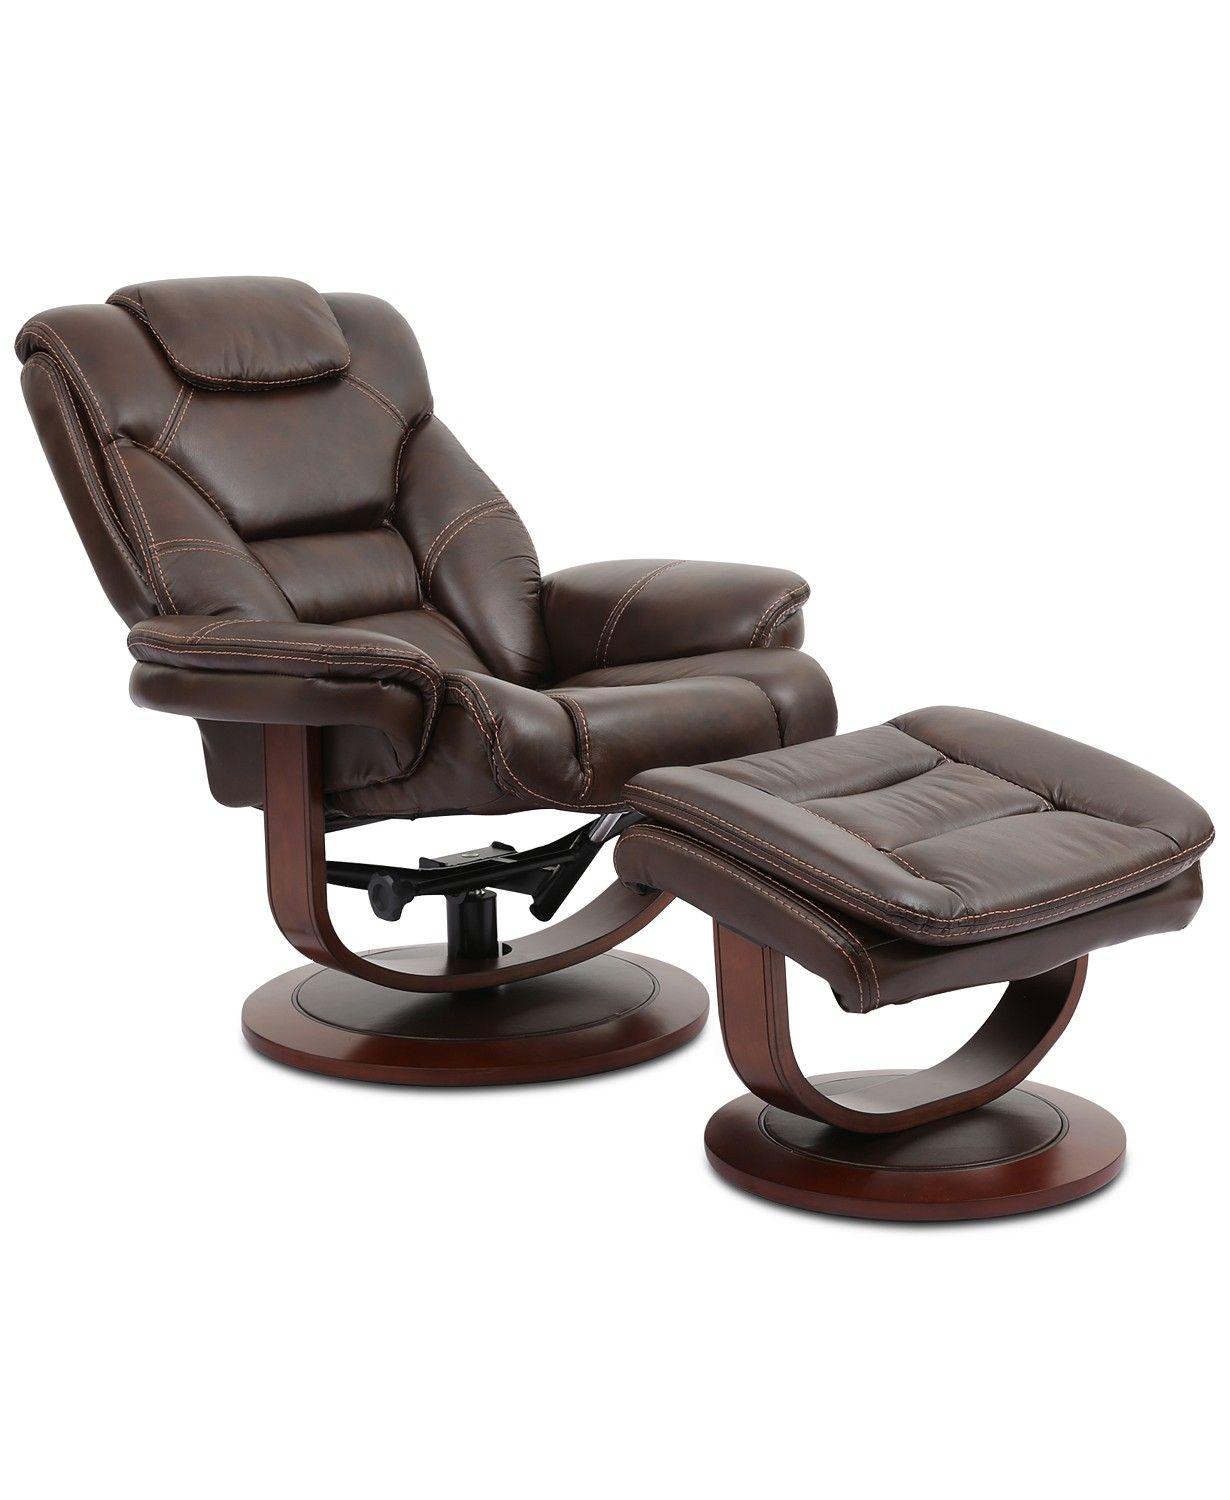 Furniture Faringdon Leather Chair Collection & Reviews